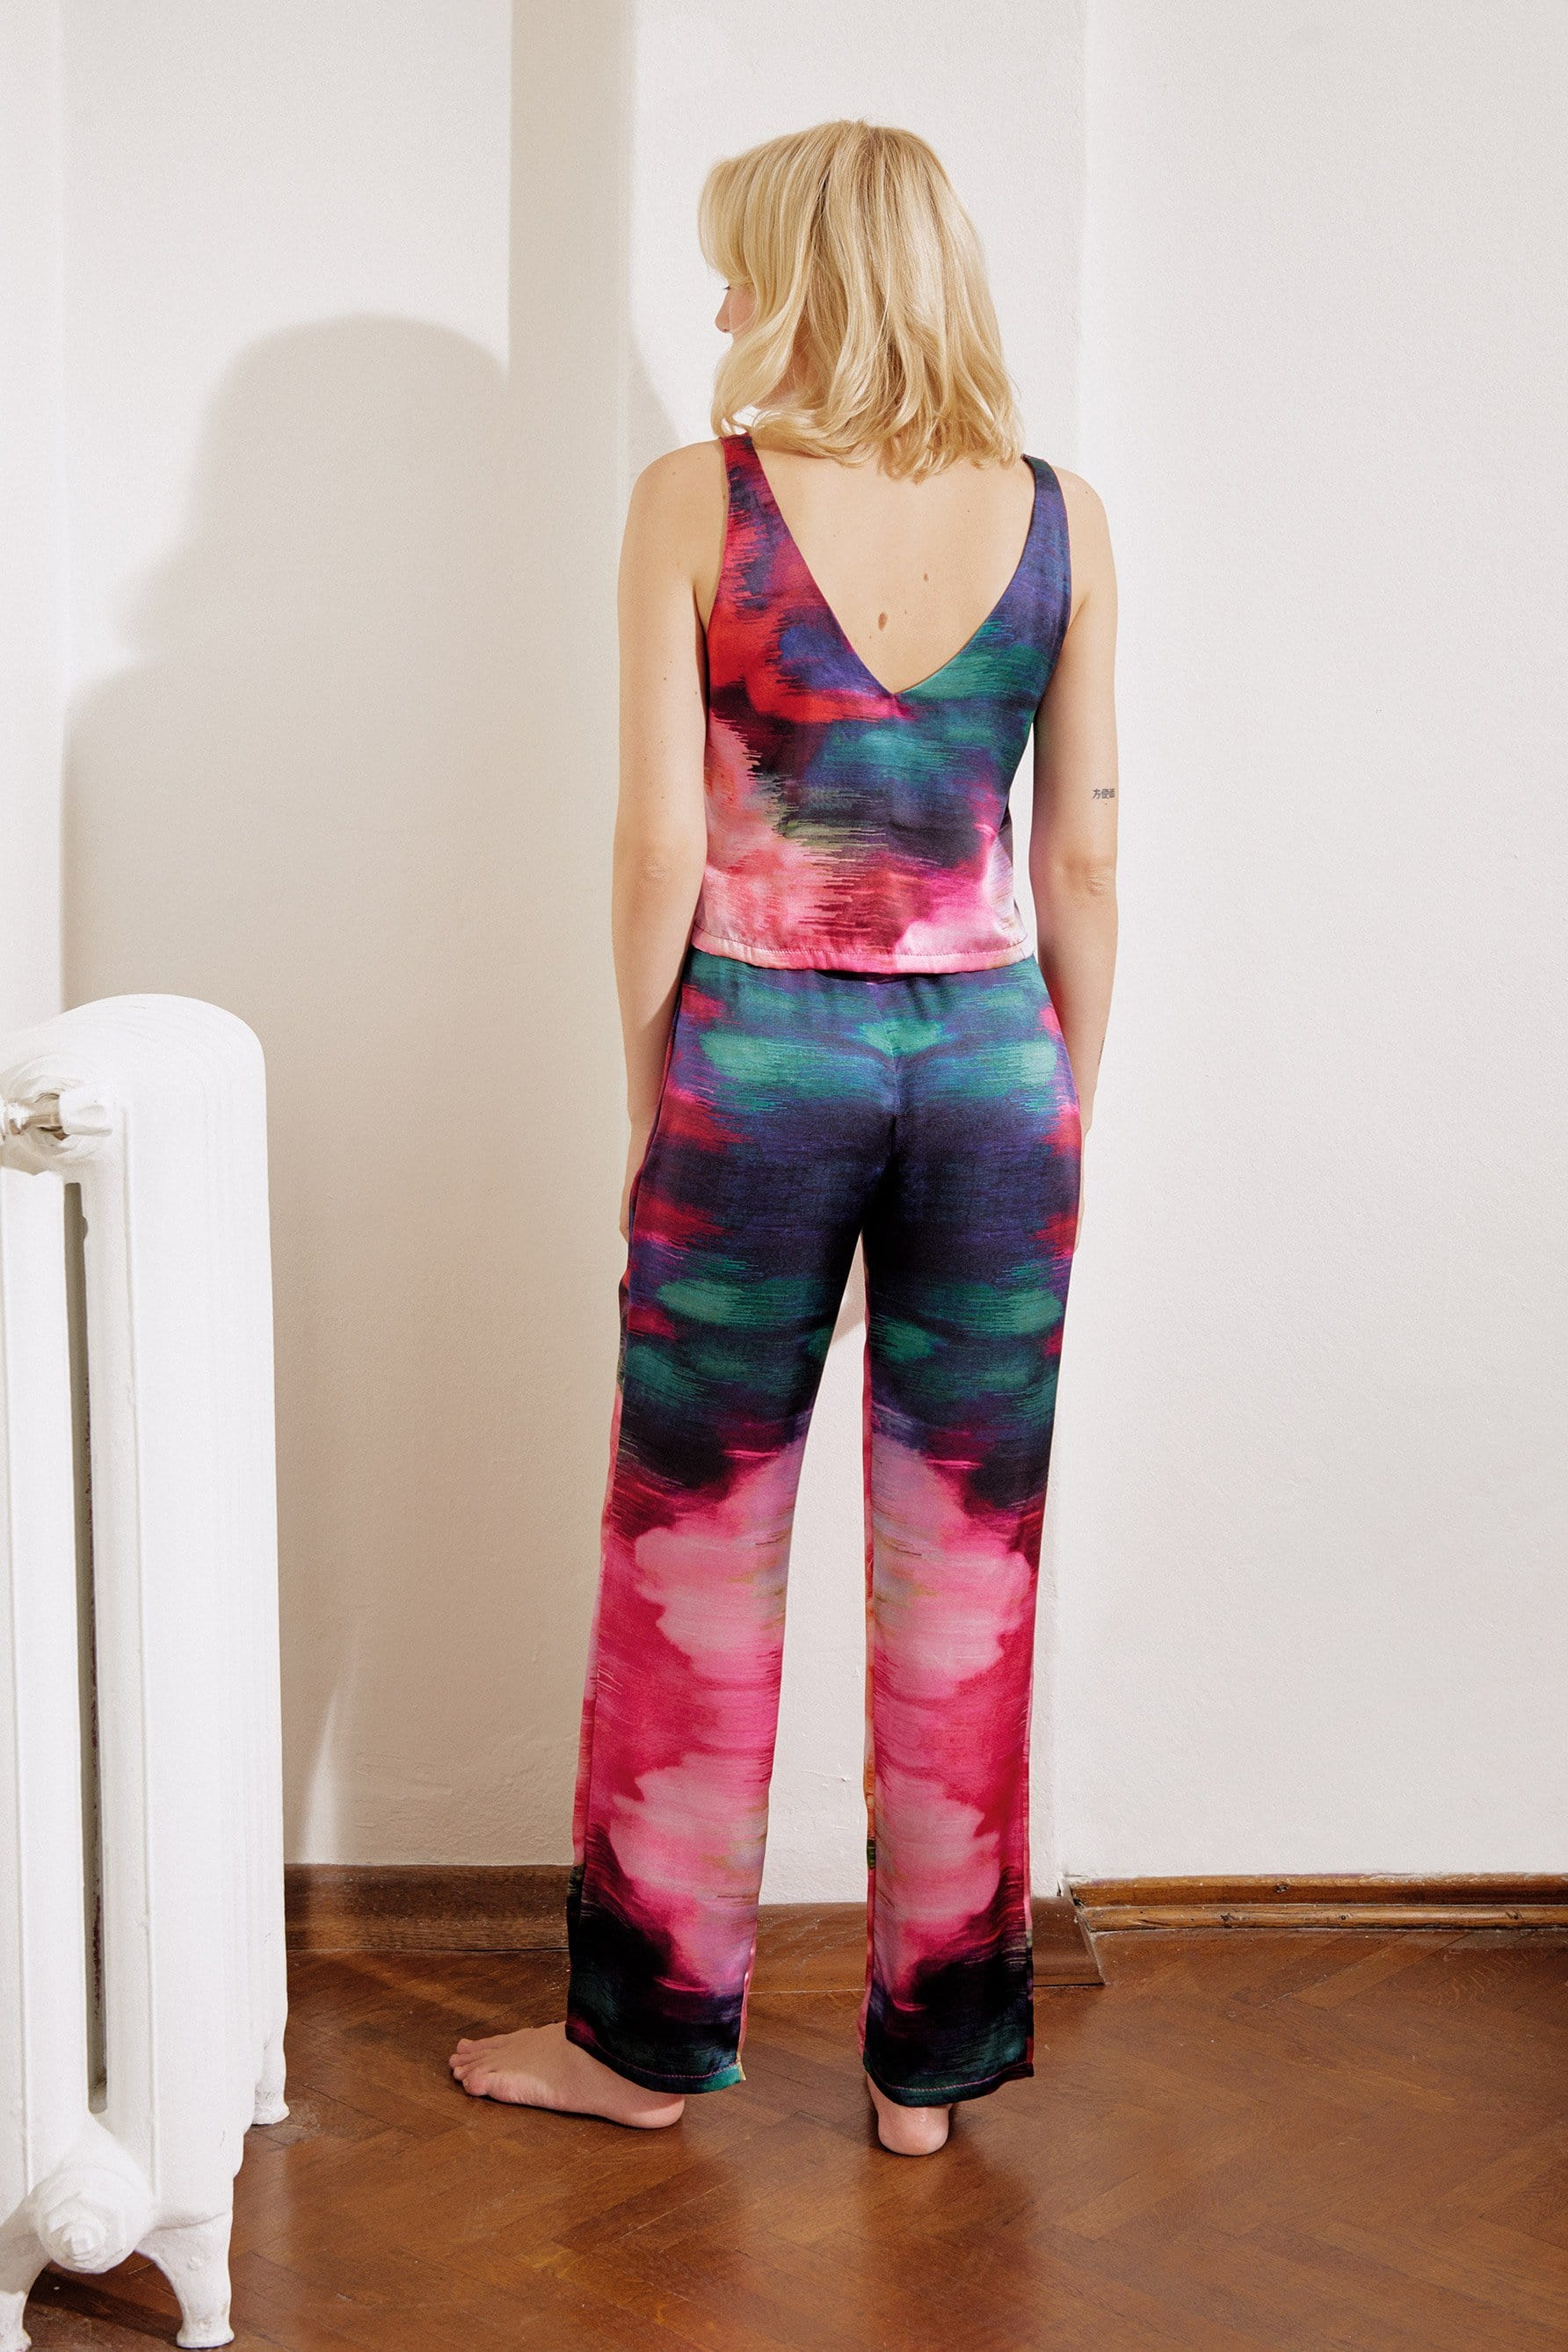 Else Maui silk crop top & long pants in abstract colorful print, on model, back view